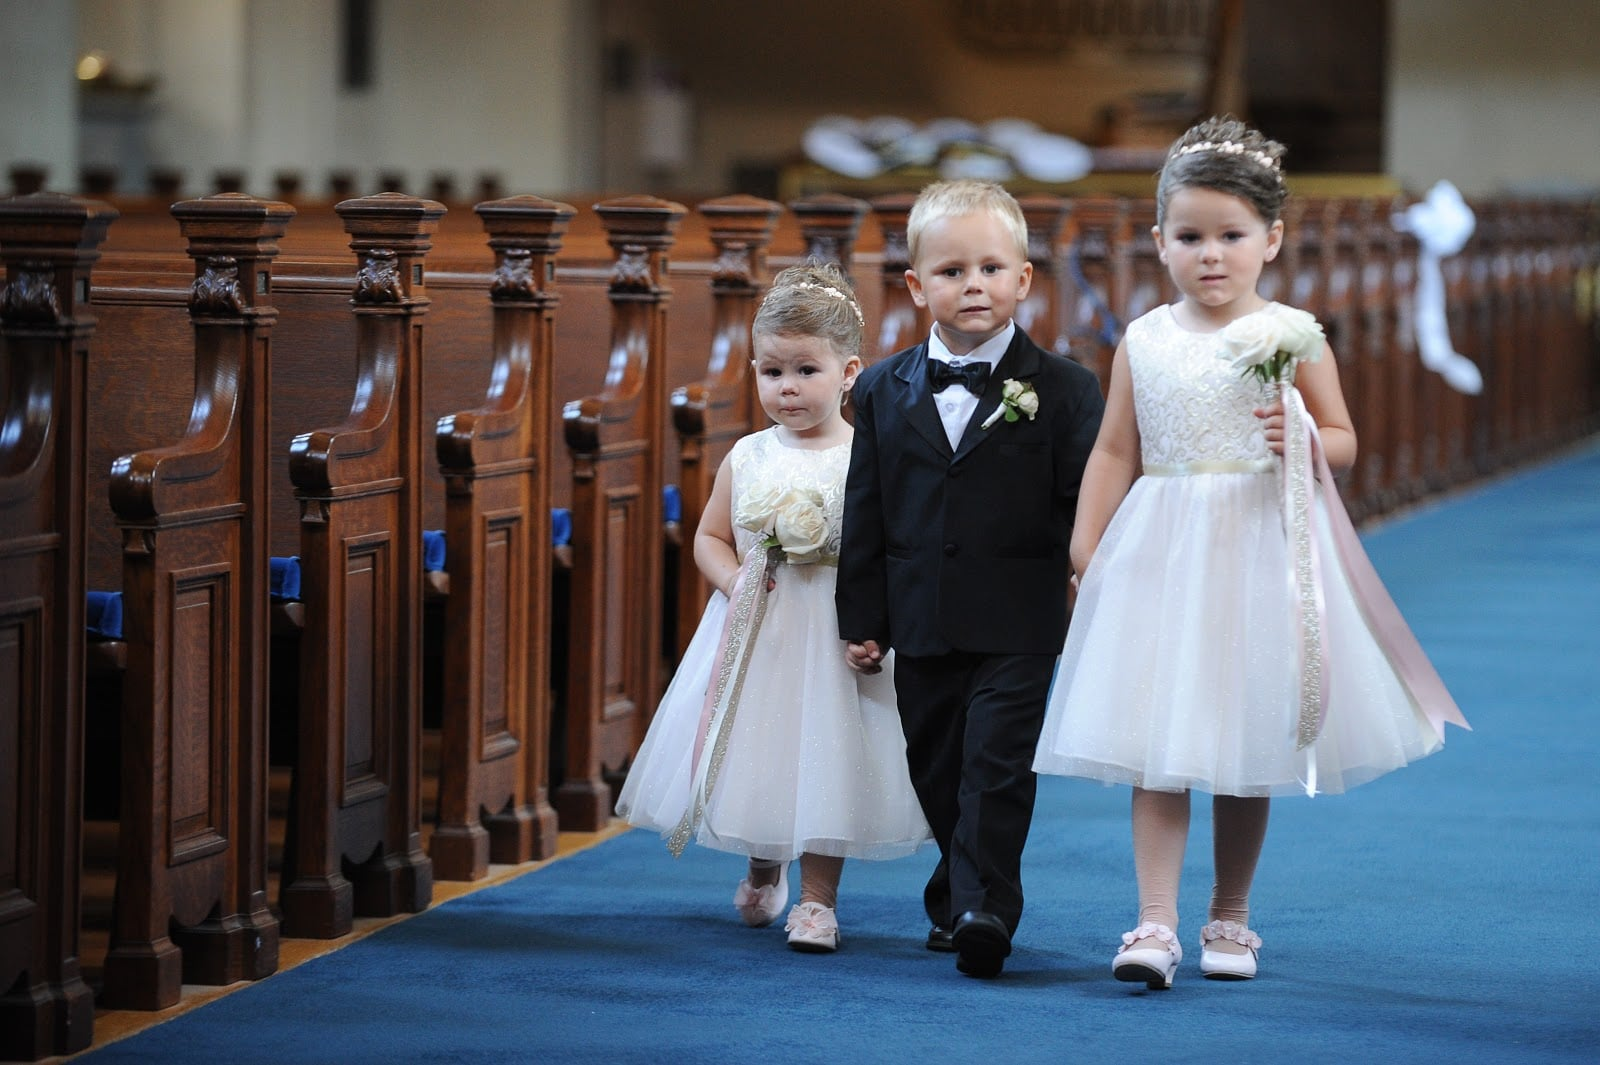 flower girls and ring-bearer in church